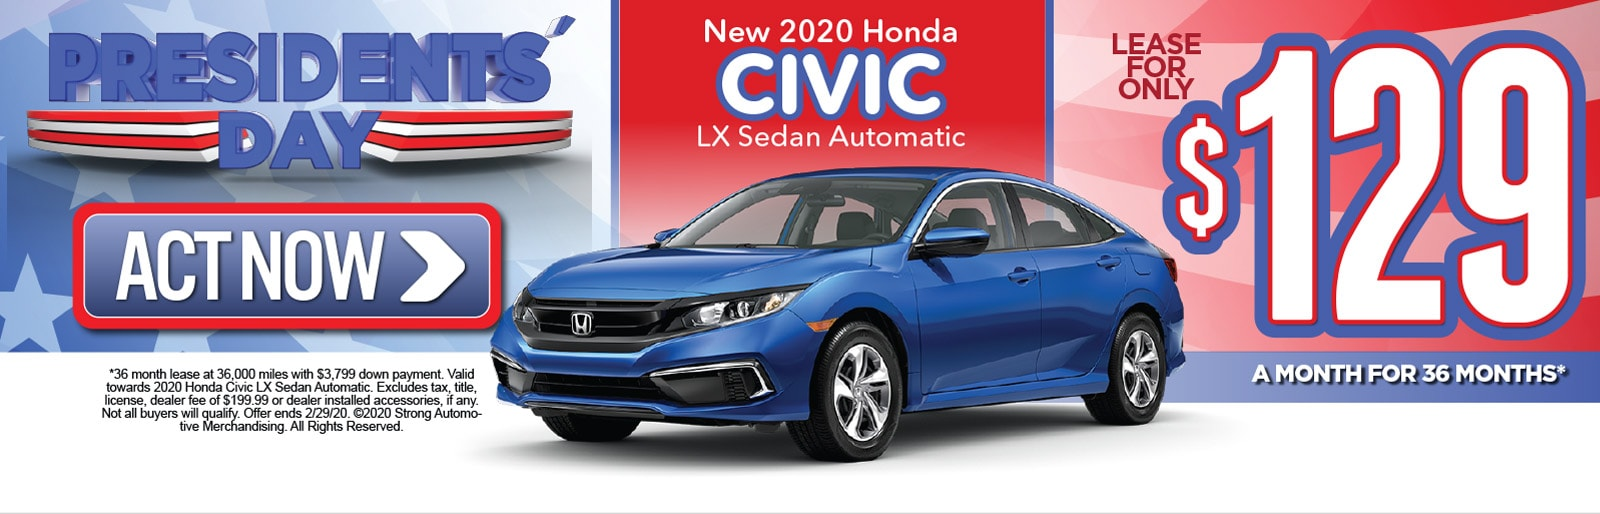 2020 Honda Civic in St. Louis, MO